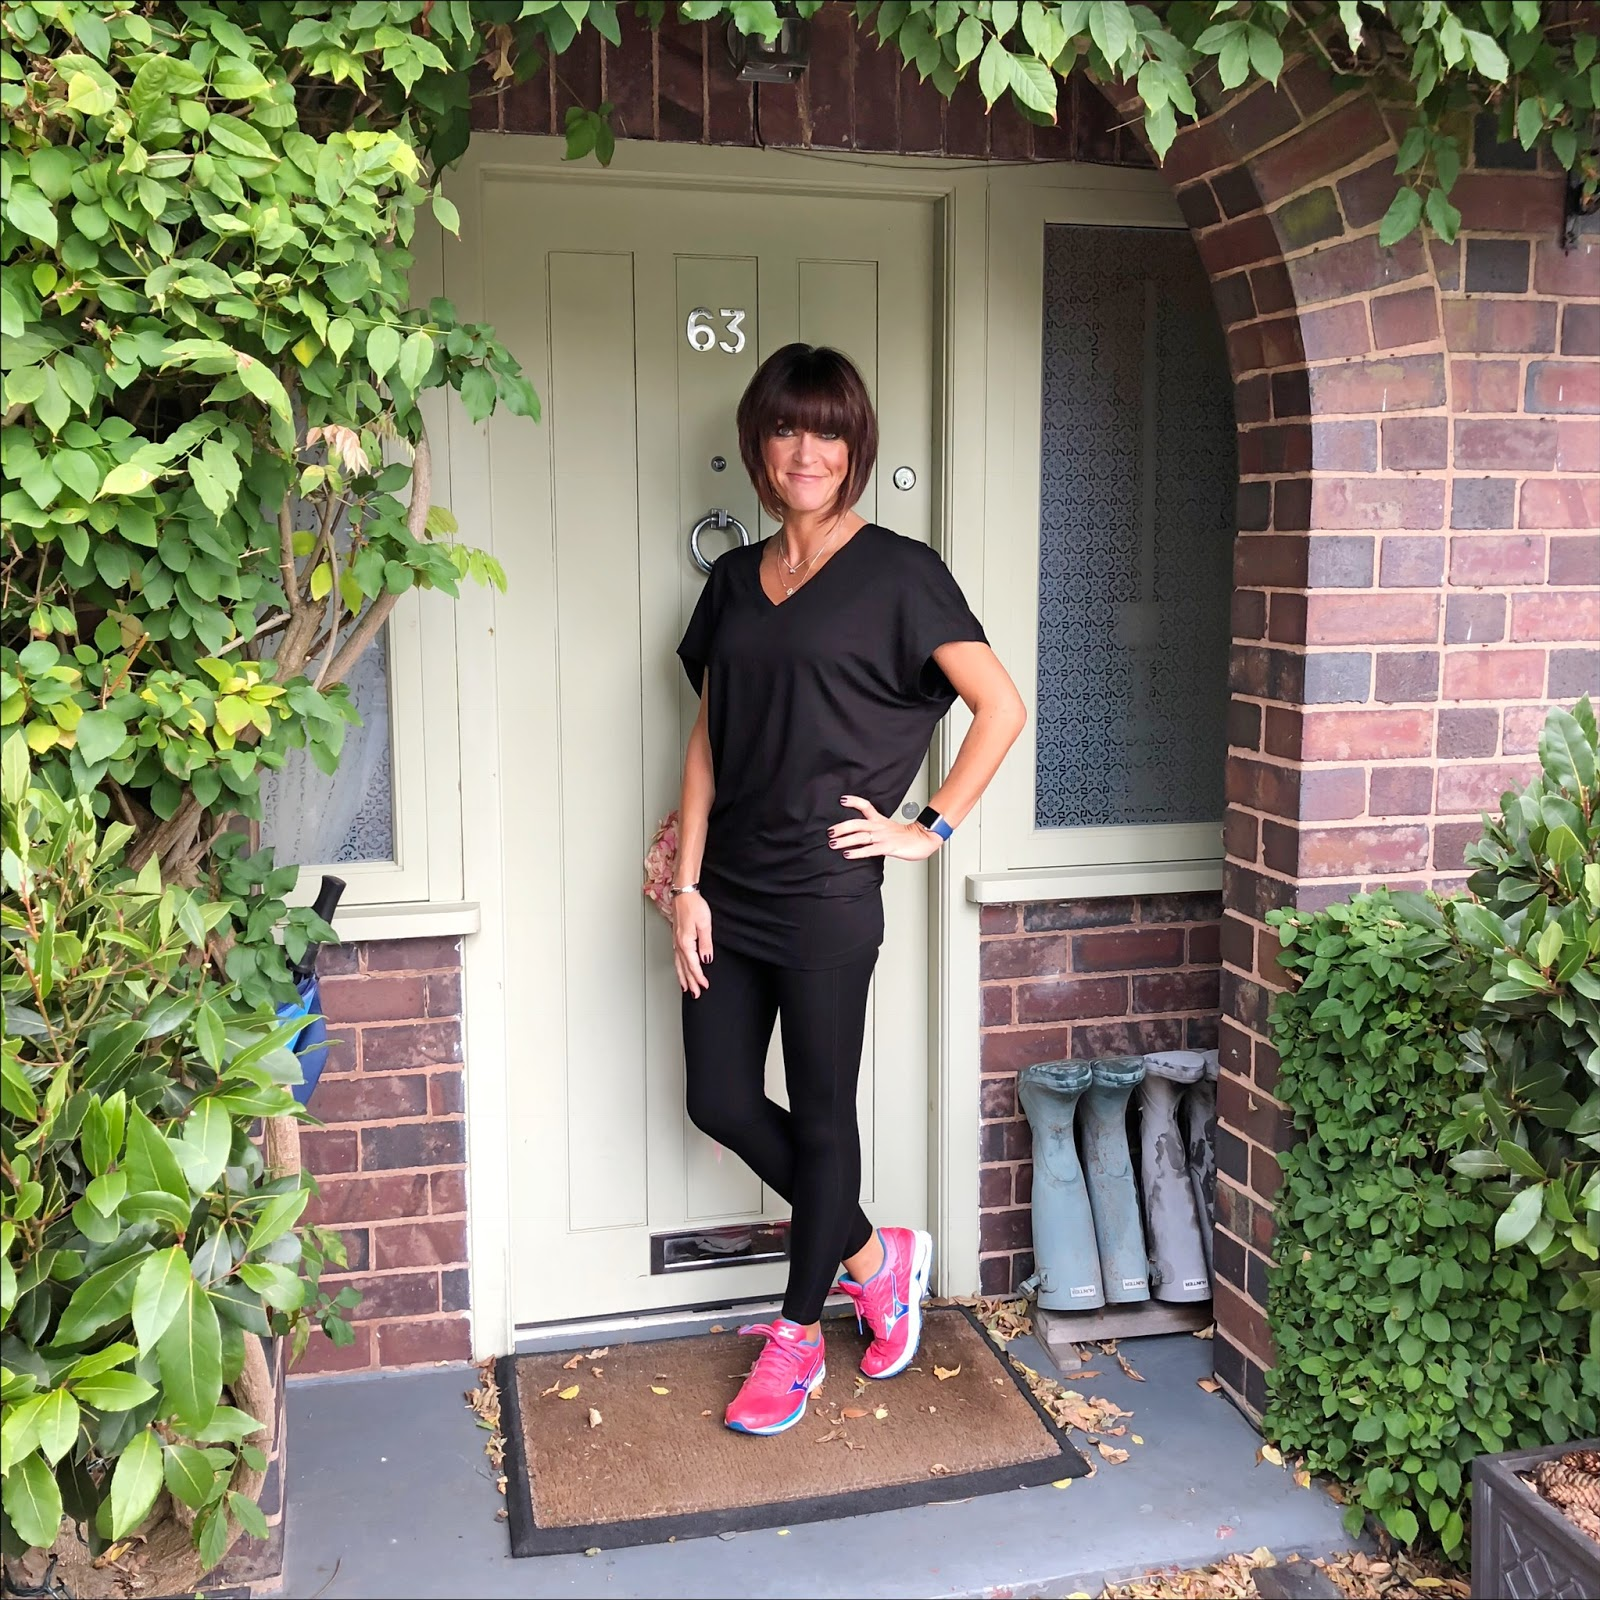 my midlife fashion, asquith london, activewear, asquith london freedom tee, asquith london move it leggings